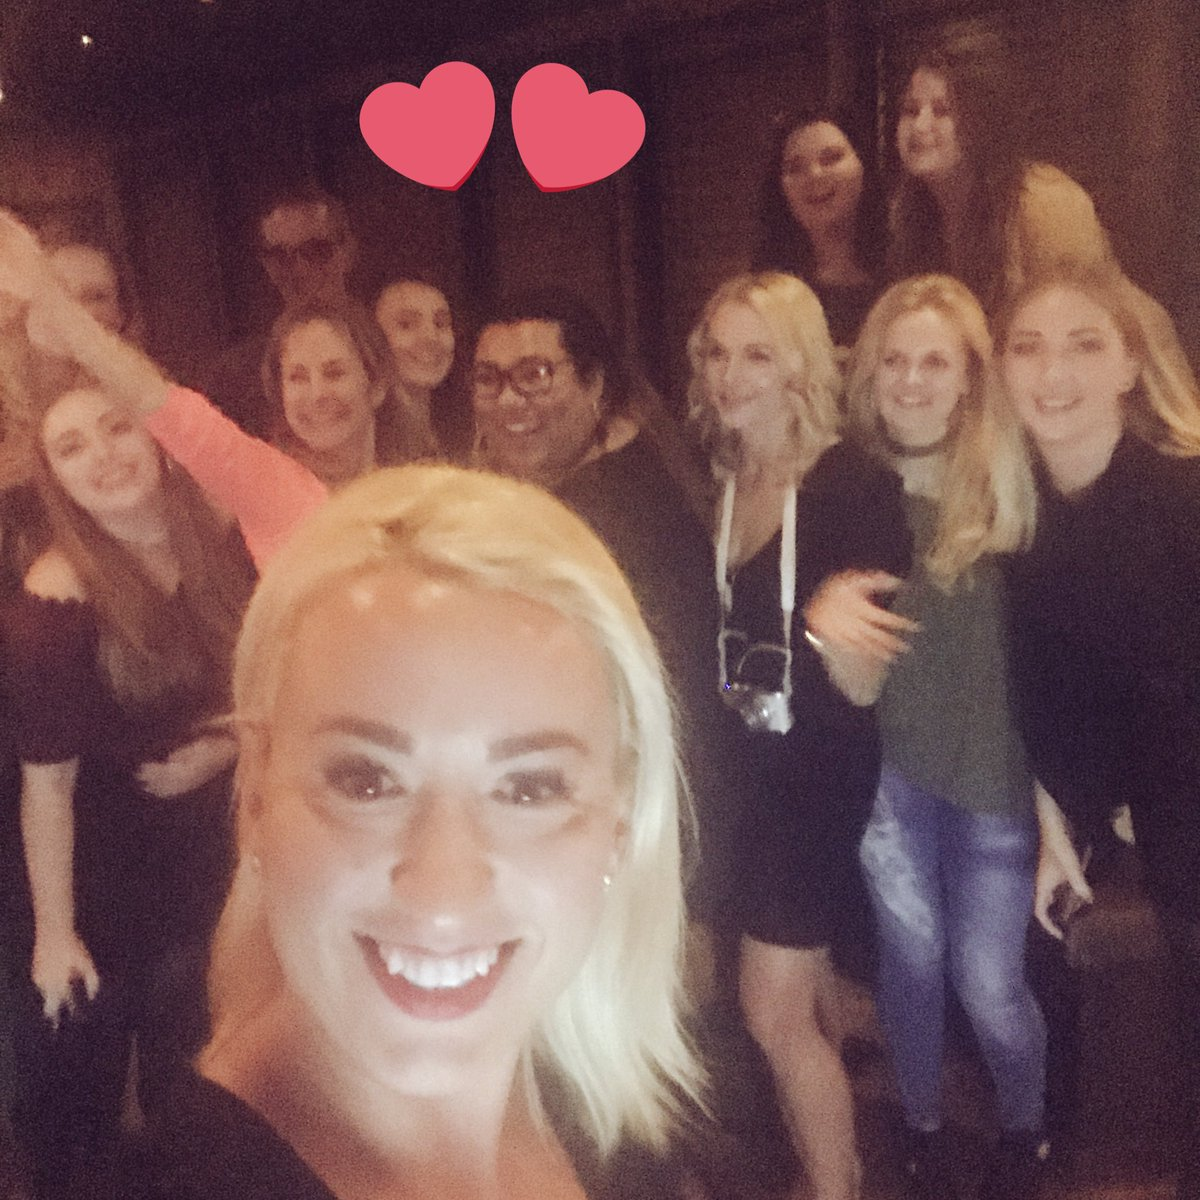 It was sooo lovely to meet all of you girls @bmthbloggers #bloggersmeetup @Kohlounge  #bournemouth #bournemouthbloggers #influencer #bmth<br>http://pic.twitter.com/XoiZxRqP3P